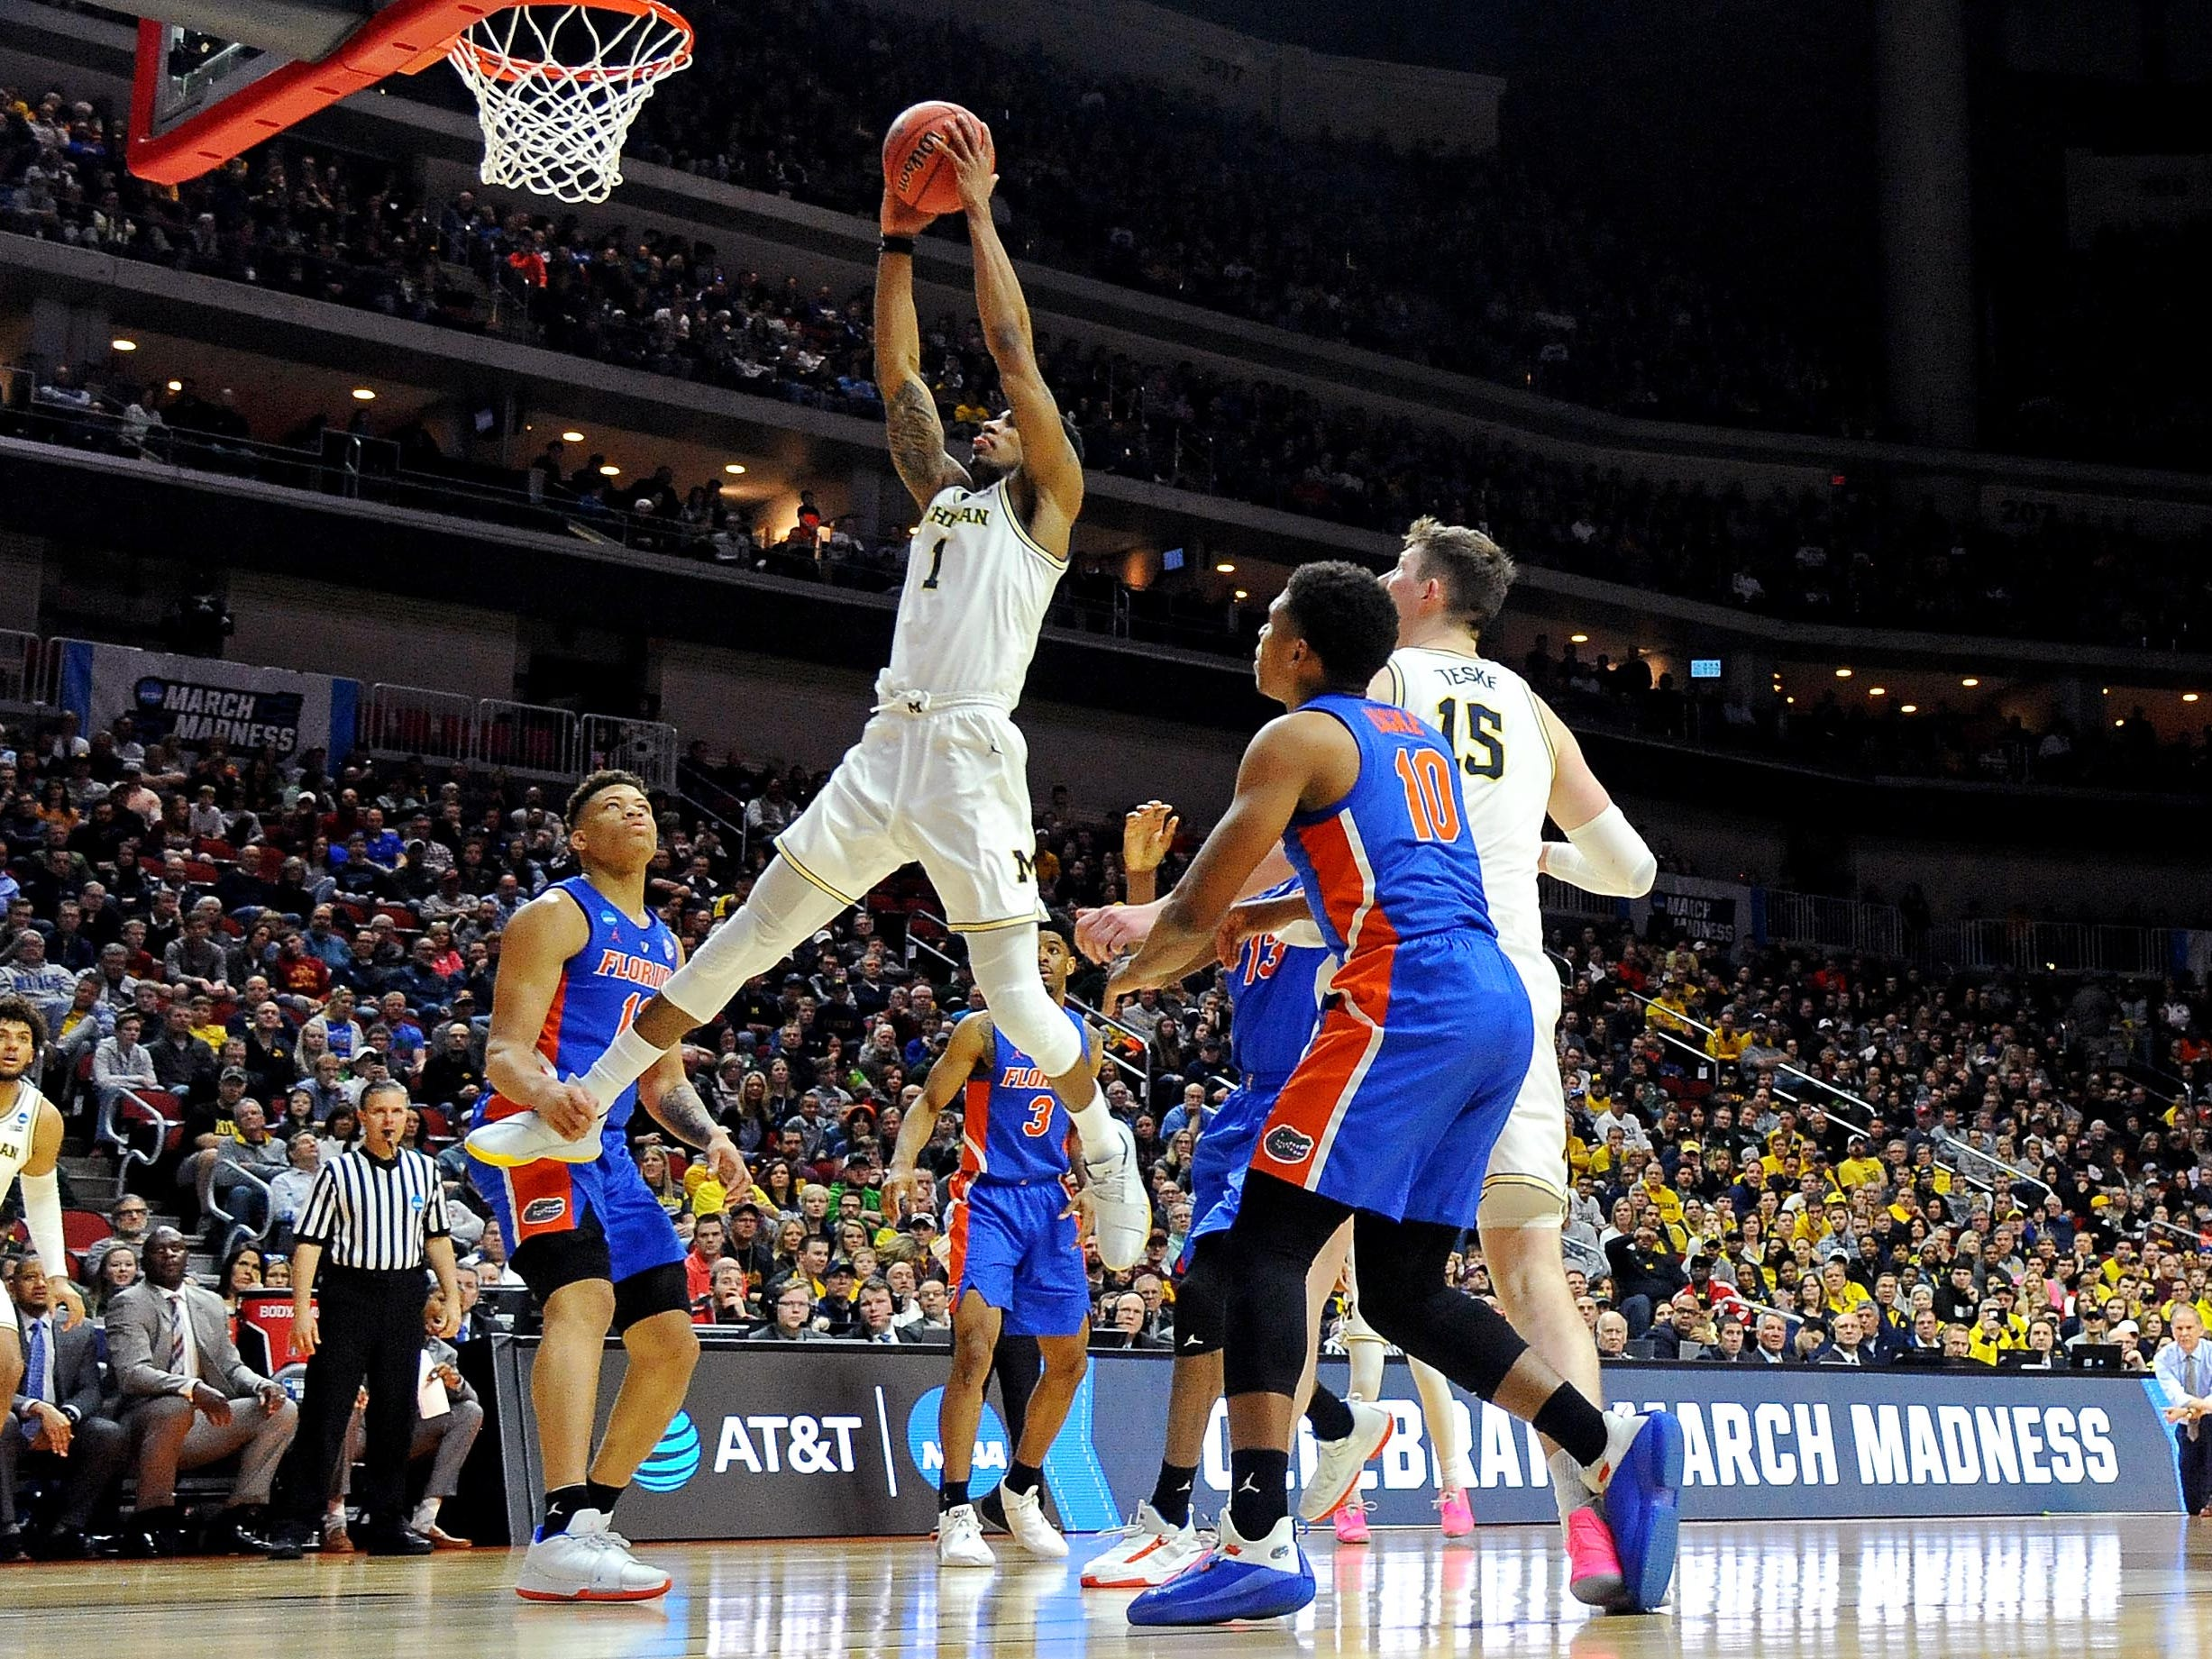 Round of 32: Michigan Wolverines guard Charles Matthews goes up for a dunk against the Florida Gators.